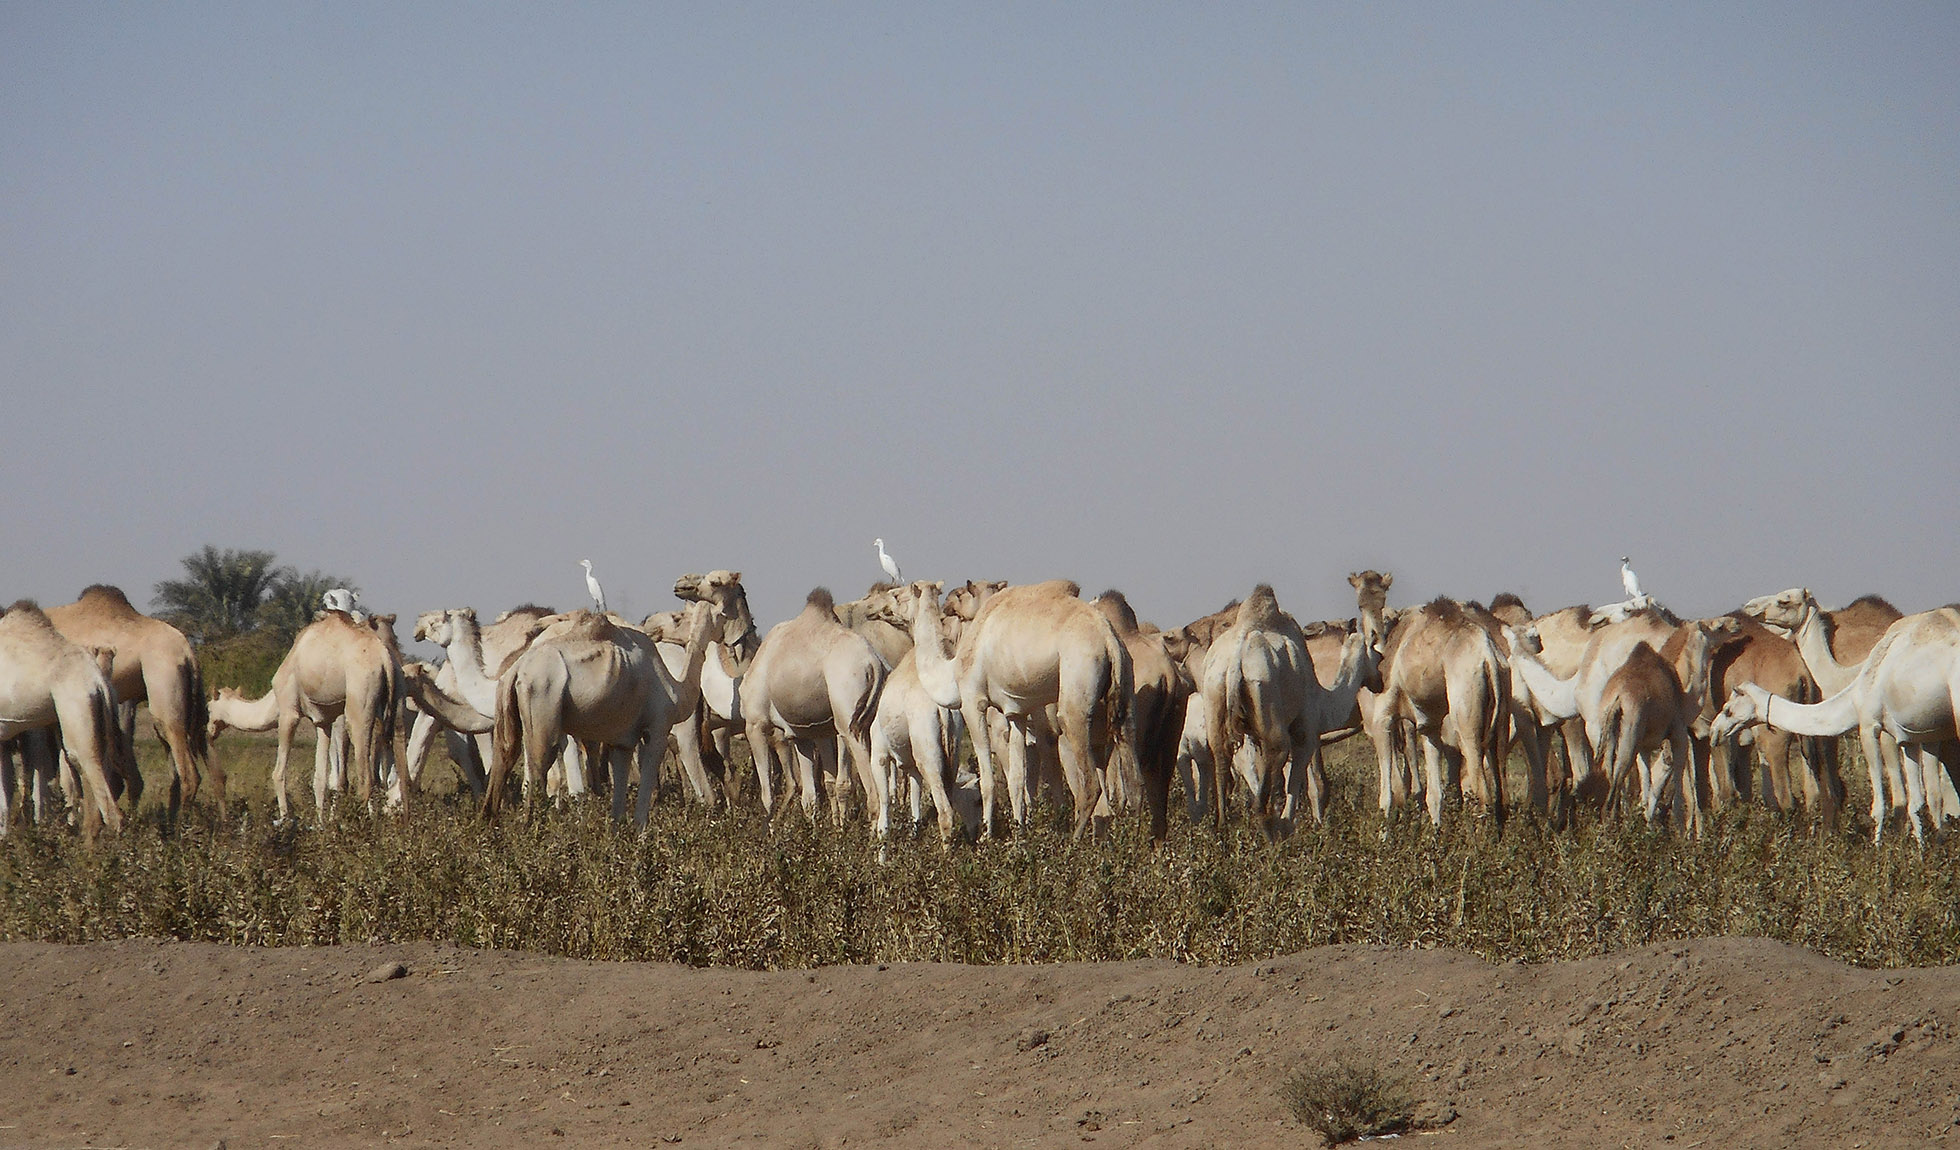 Photograph of a herd of camels grazing in a field. Some of the camels have egrets perched on their backs.